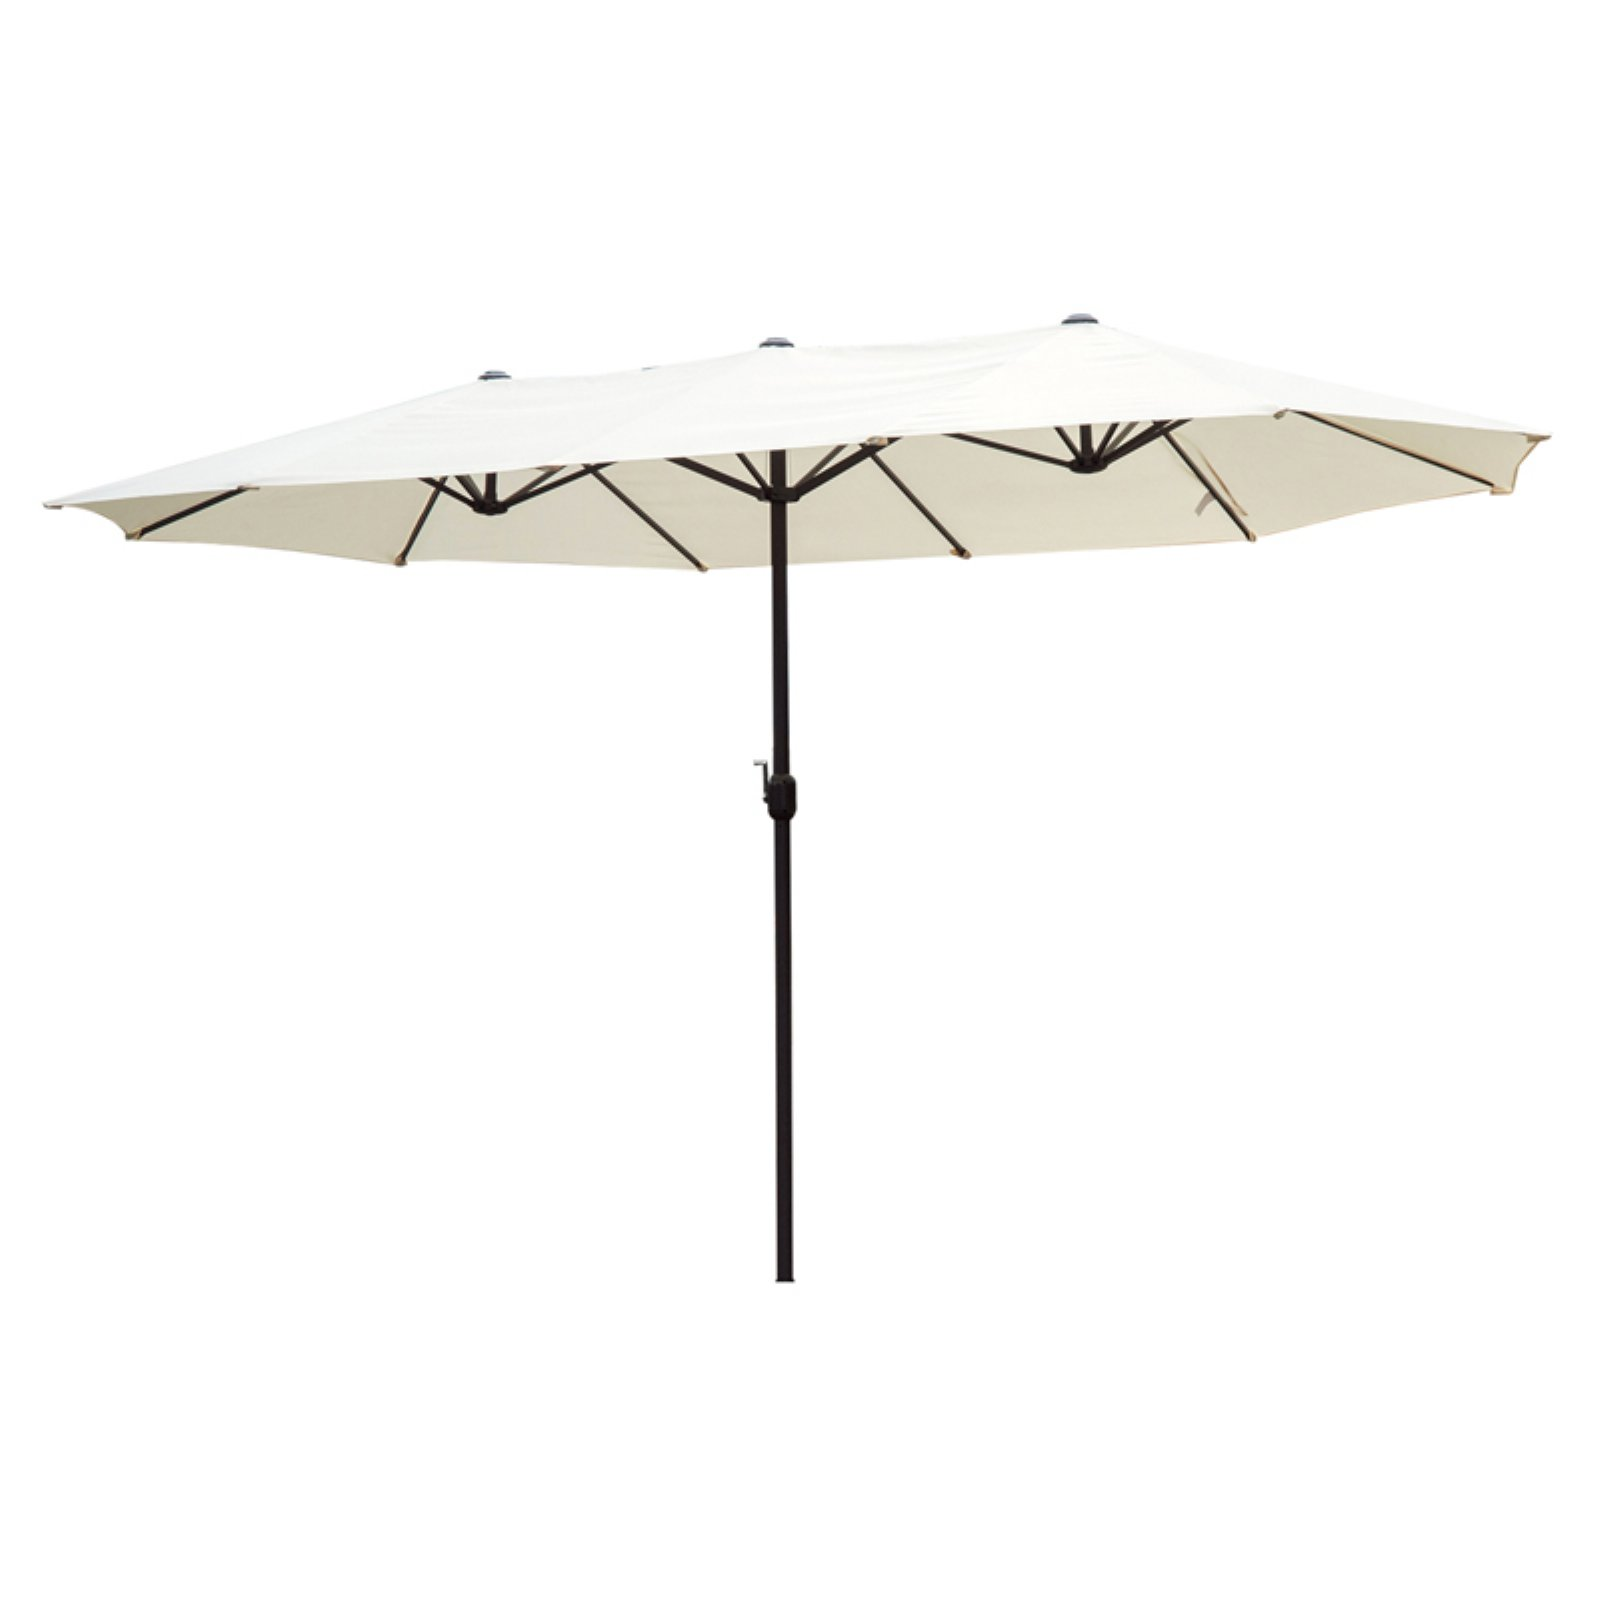 Outsunny 15 ft. Steel Double Sided Patio Umbrella by Aosom LLC